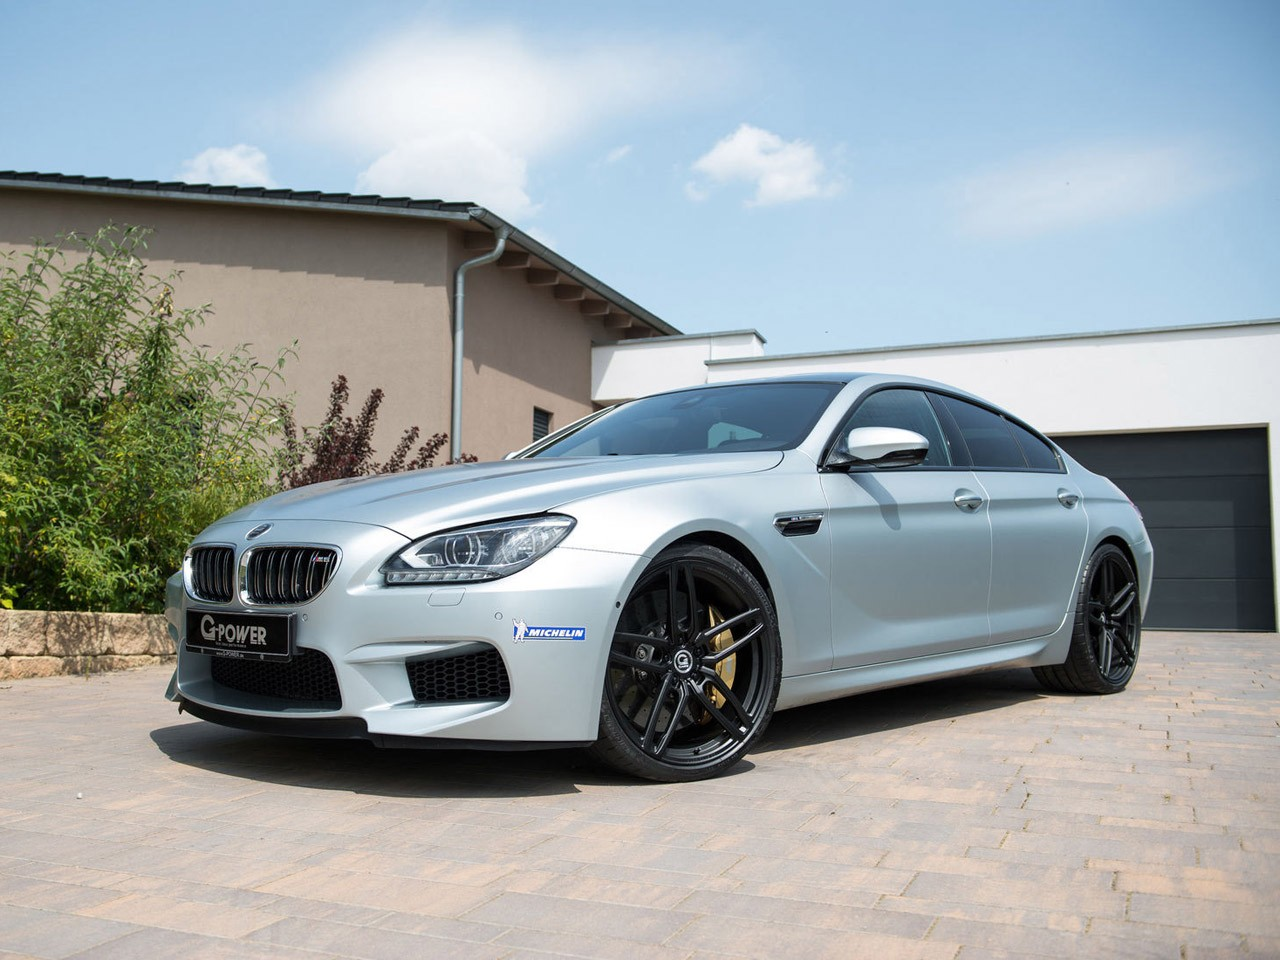 2014 G-Power - Bmw M6 Gran Coupe